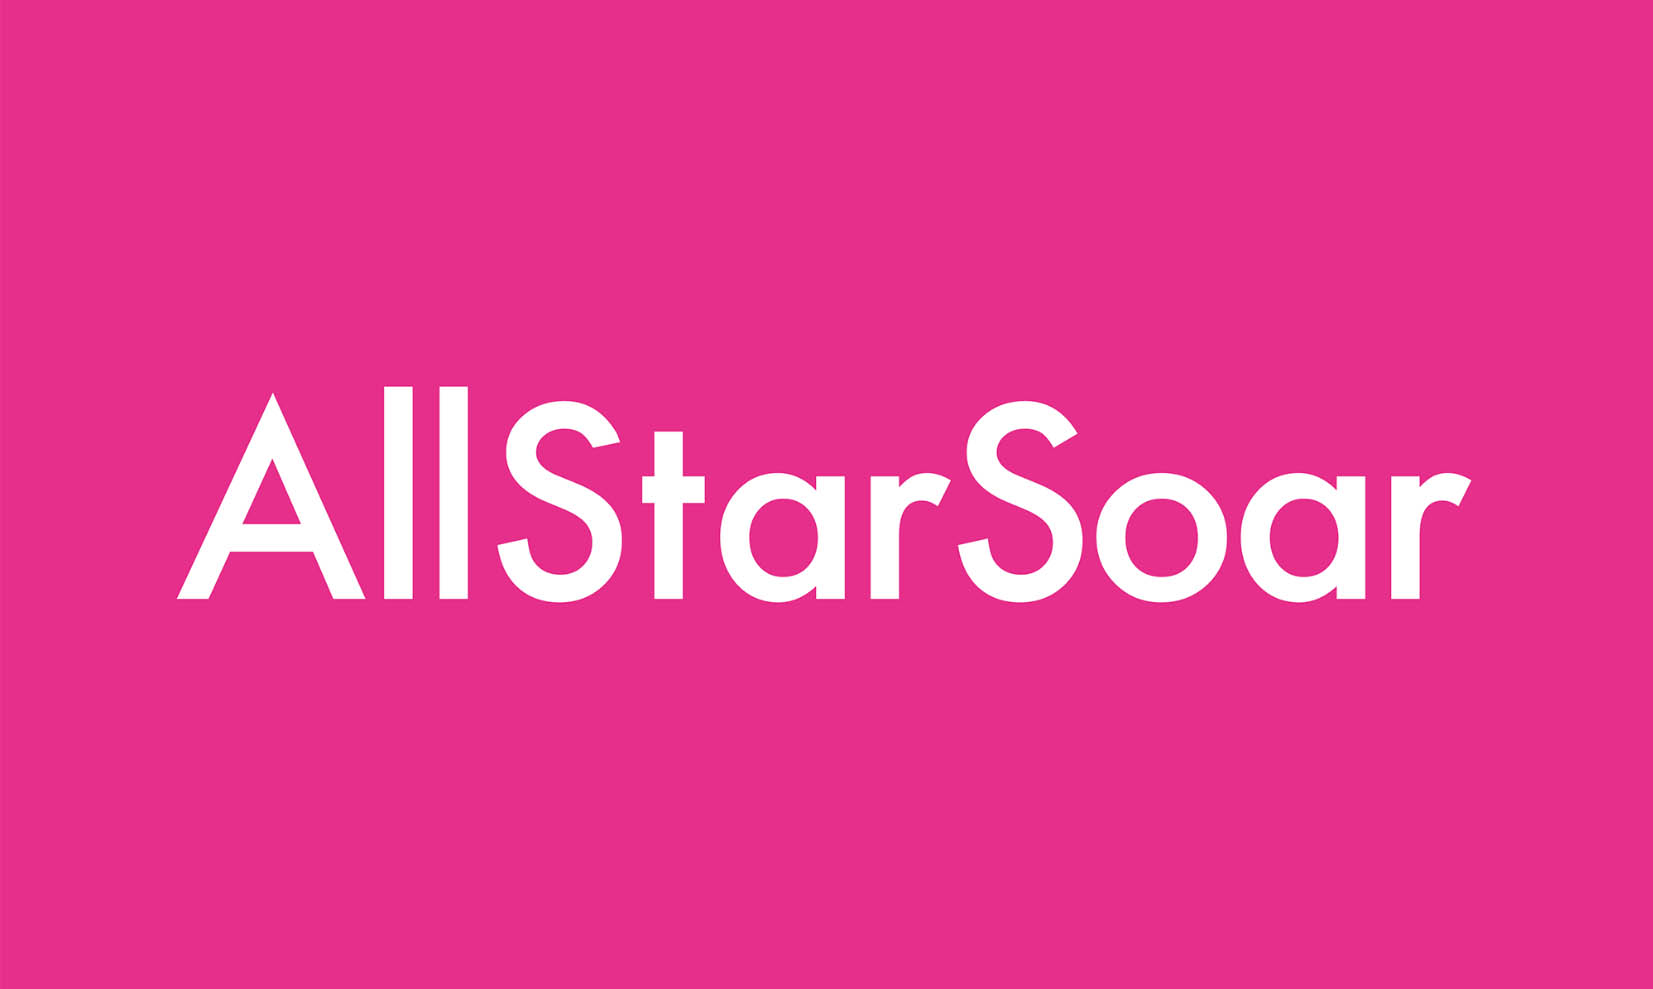 Visual identity for All Star Soar promoting brands in sports and lifestyle